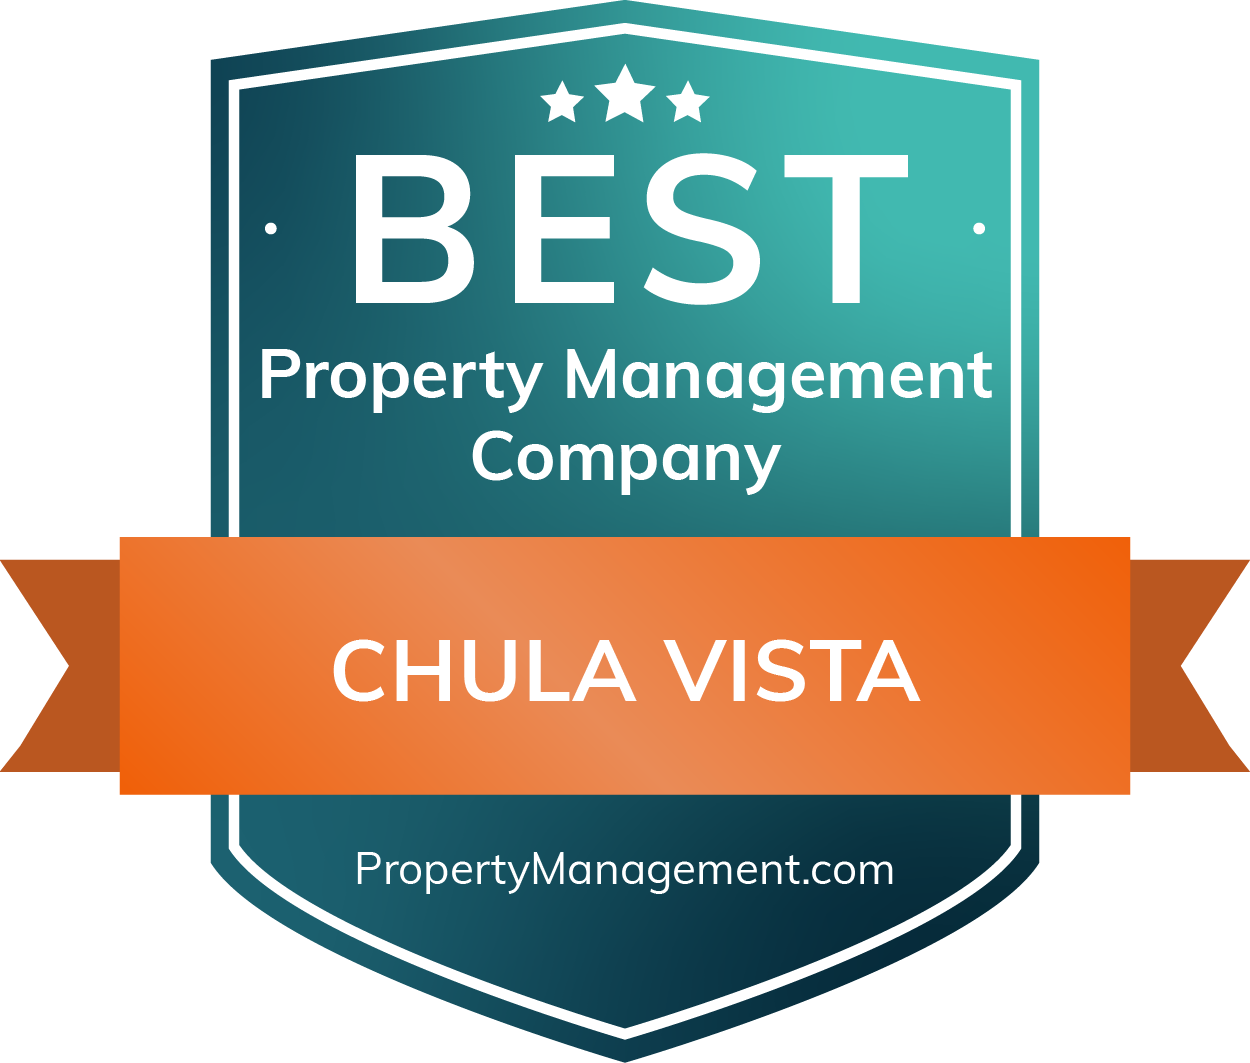 The Best Property Management in Chula Vista, CA